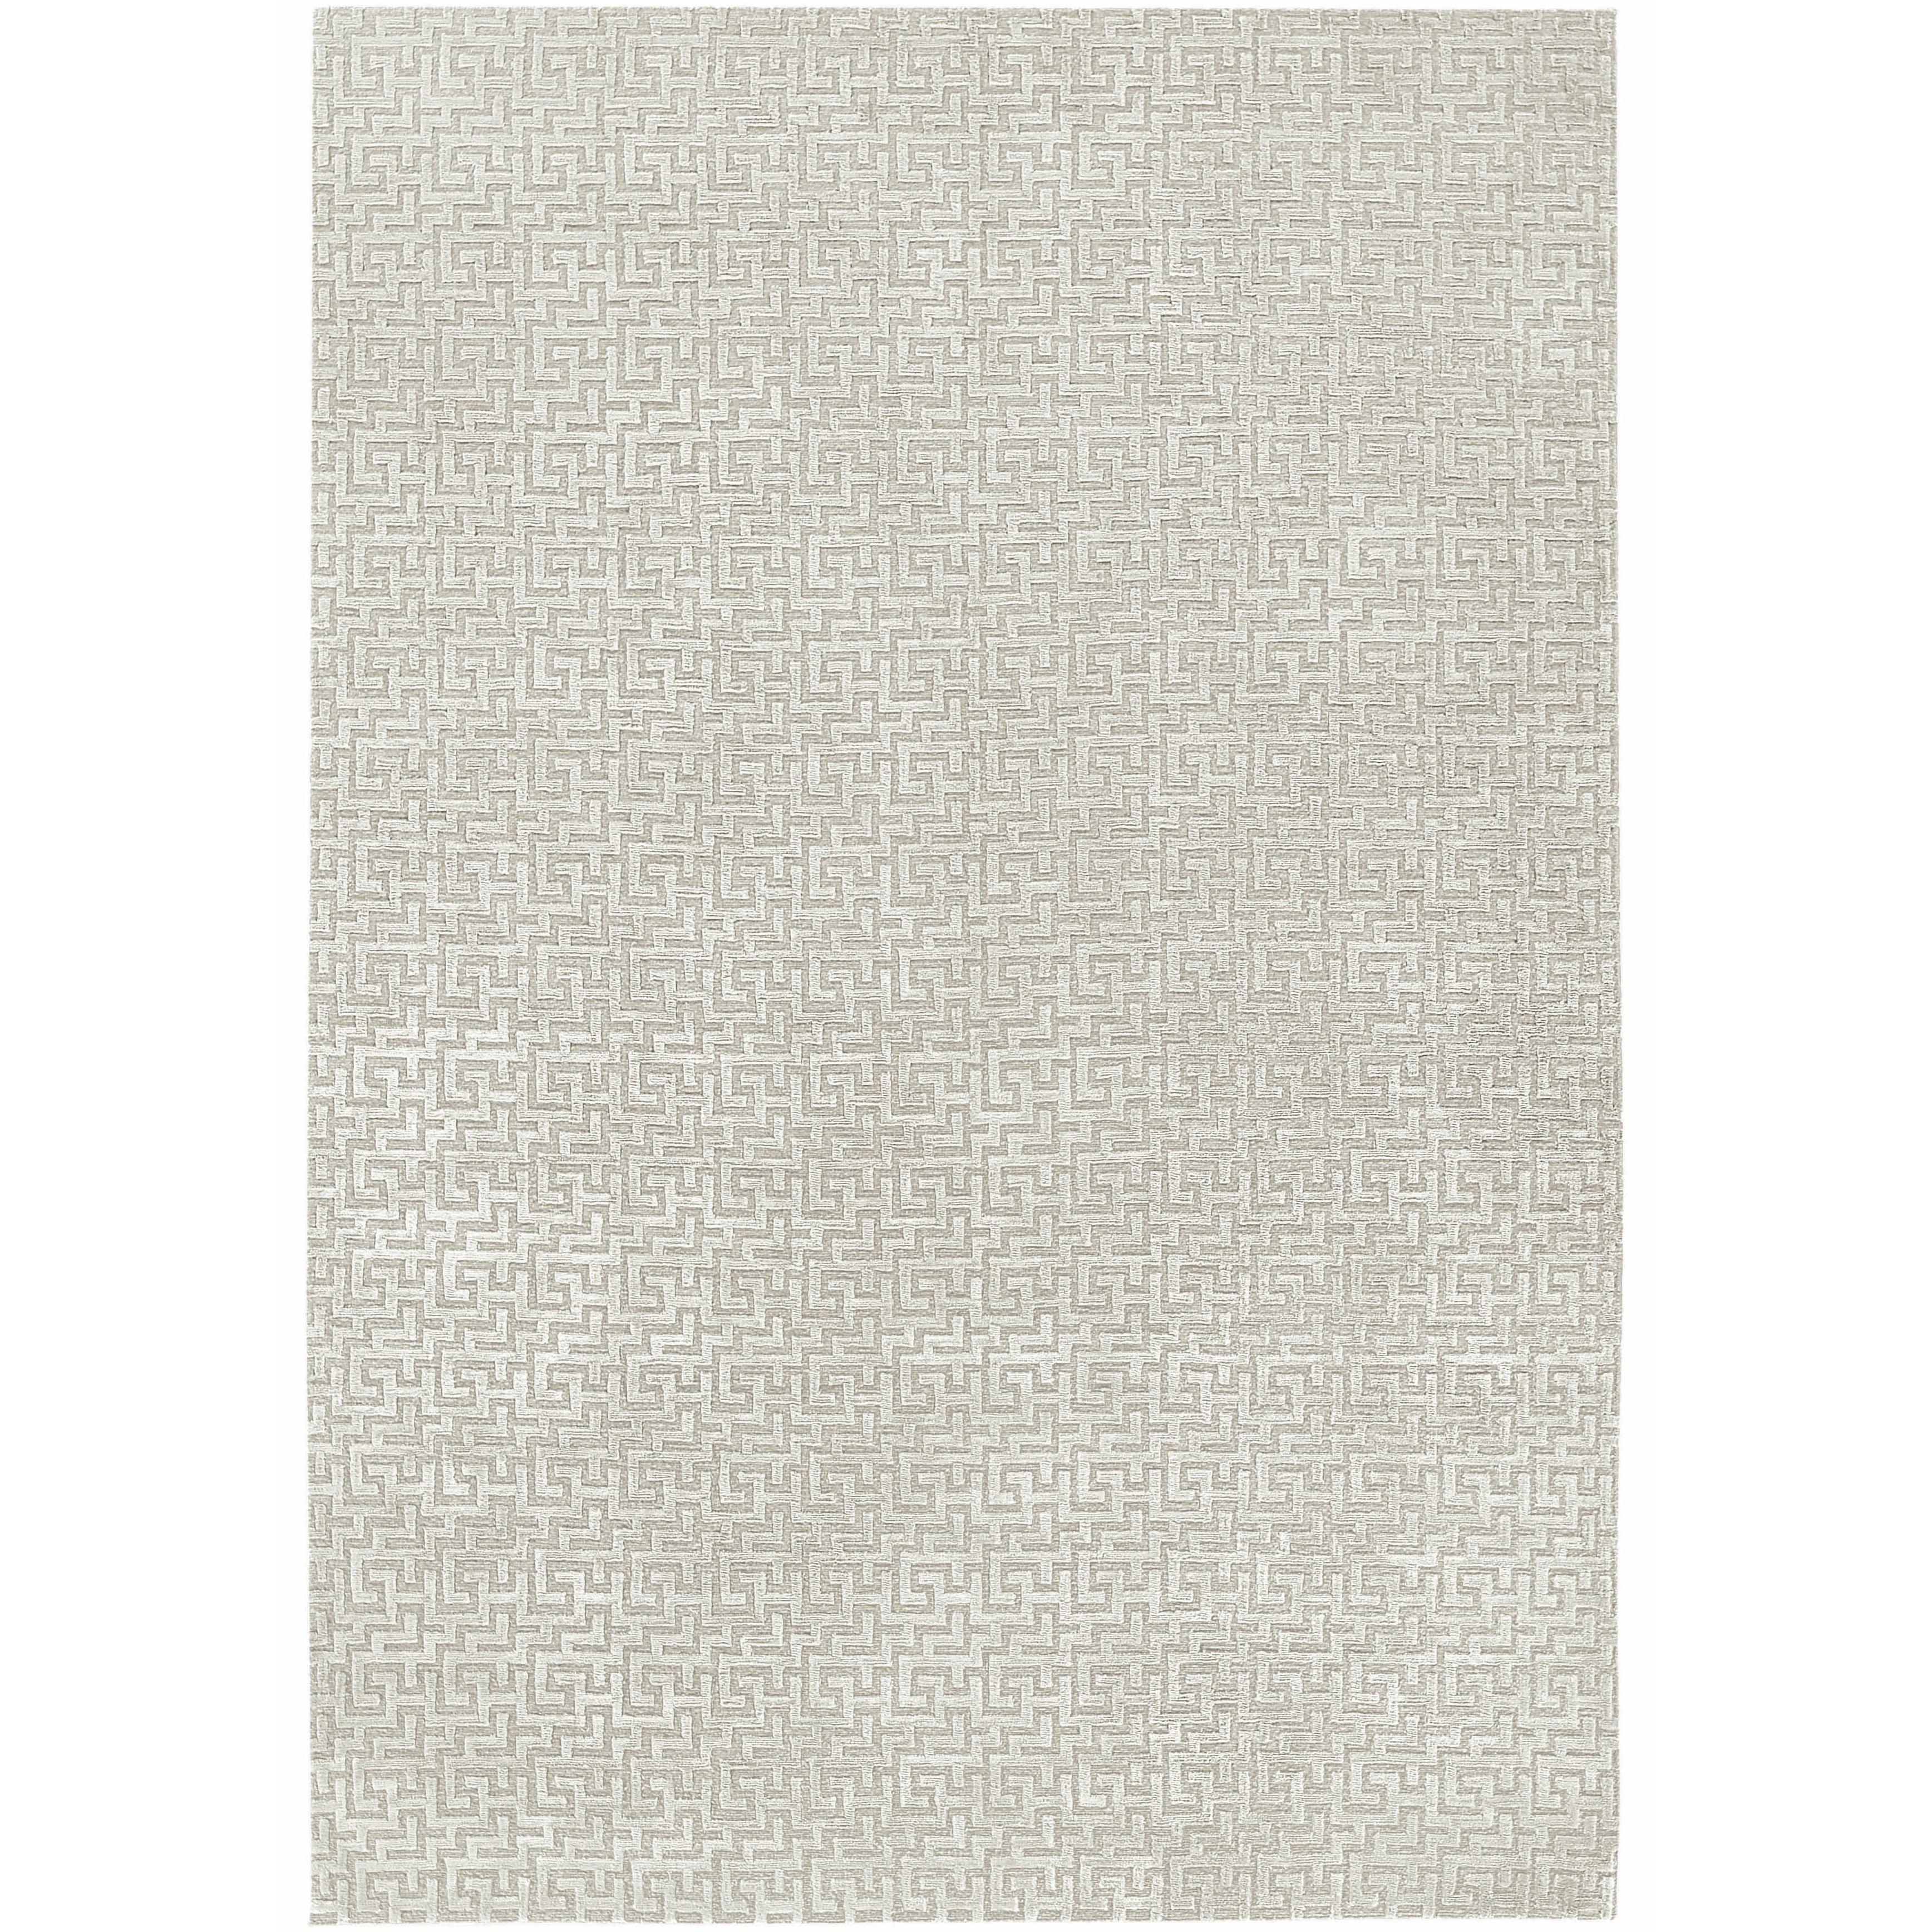 Stupa Silver Hand-Knotted 10x8 Rug in Wool and Silk by Suzanne Sharp